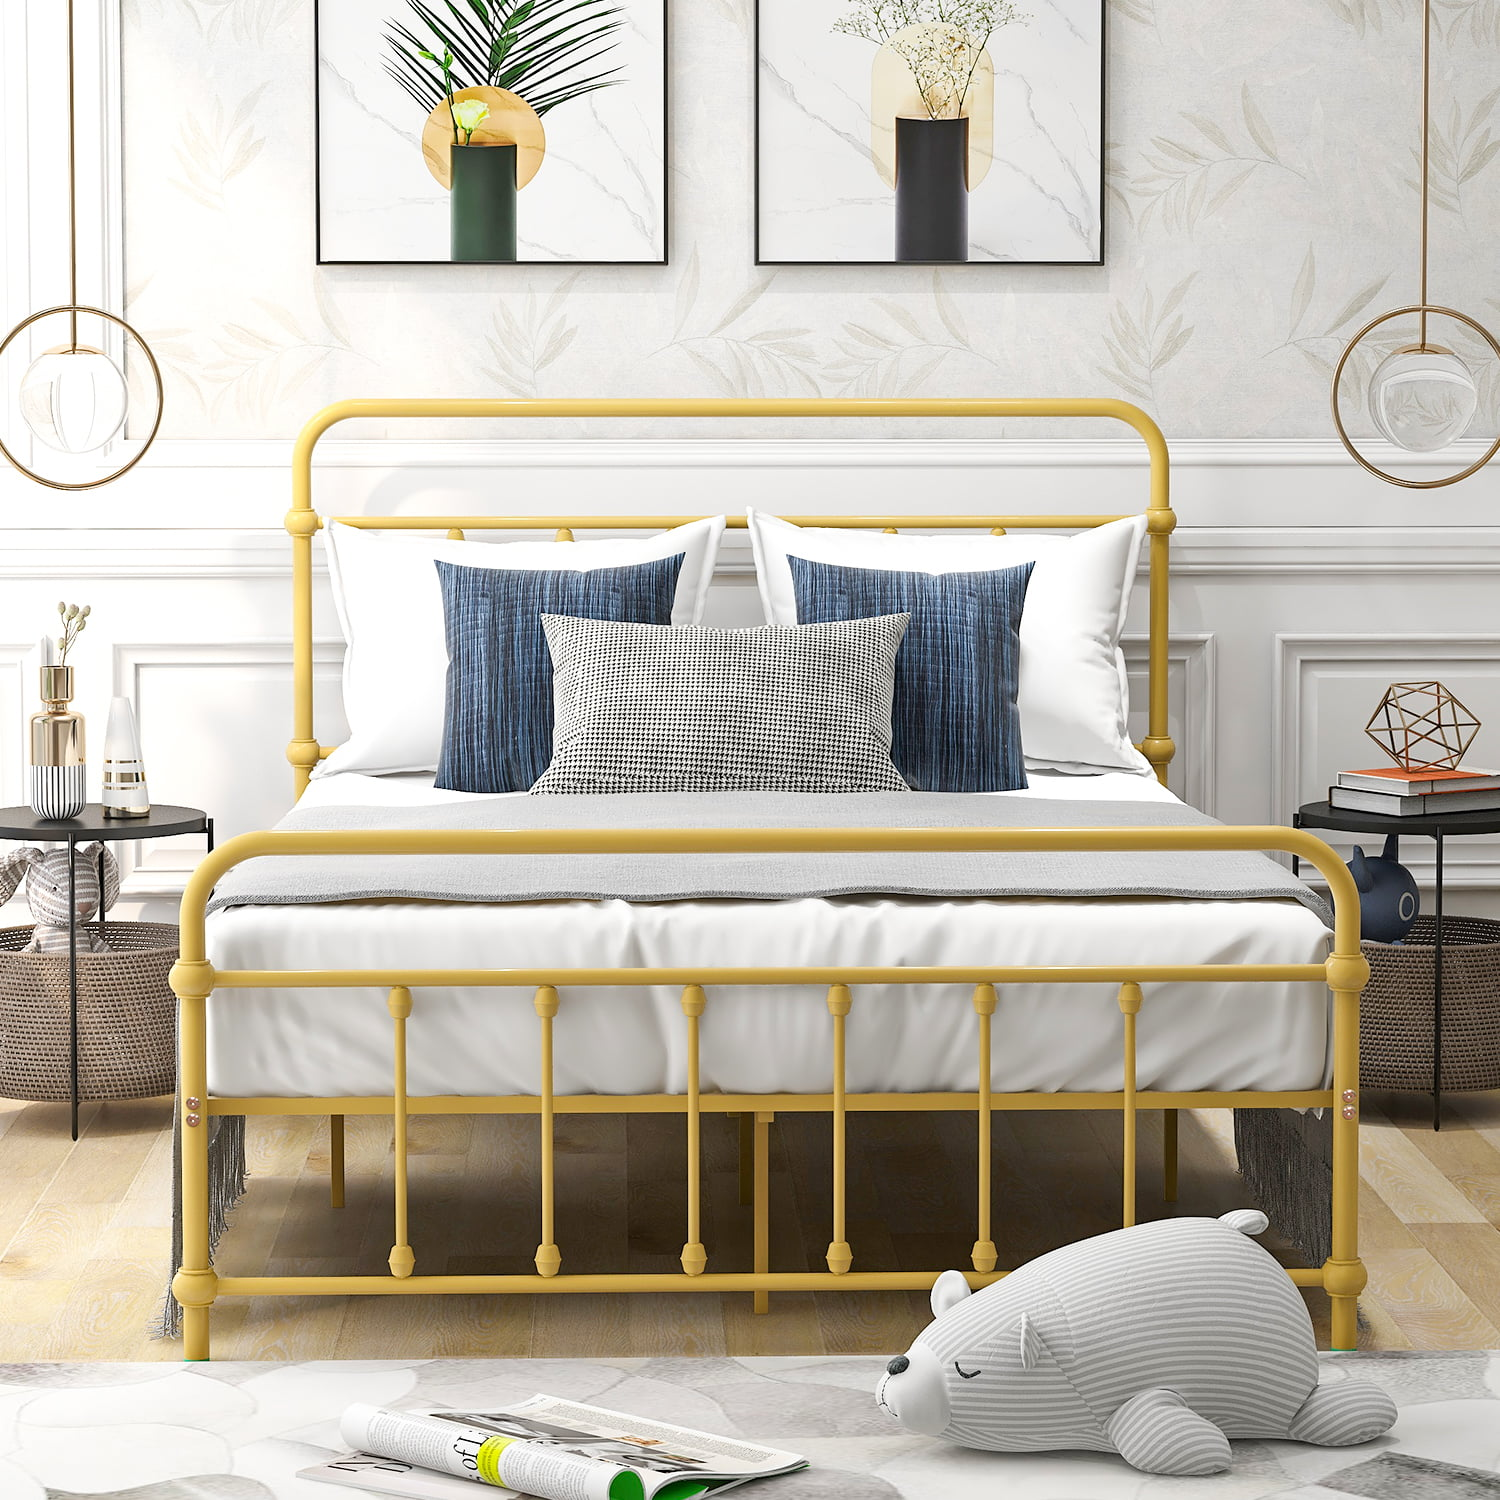 Moobody Full Size Metal Platform Bed With Headboard And Footboard Iron Bed Frame For Bedroom No Box Spring Needed Yellow Walmart Com Walmart Com